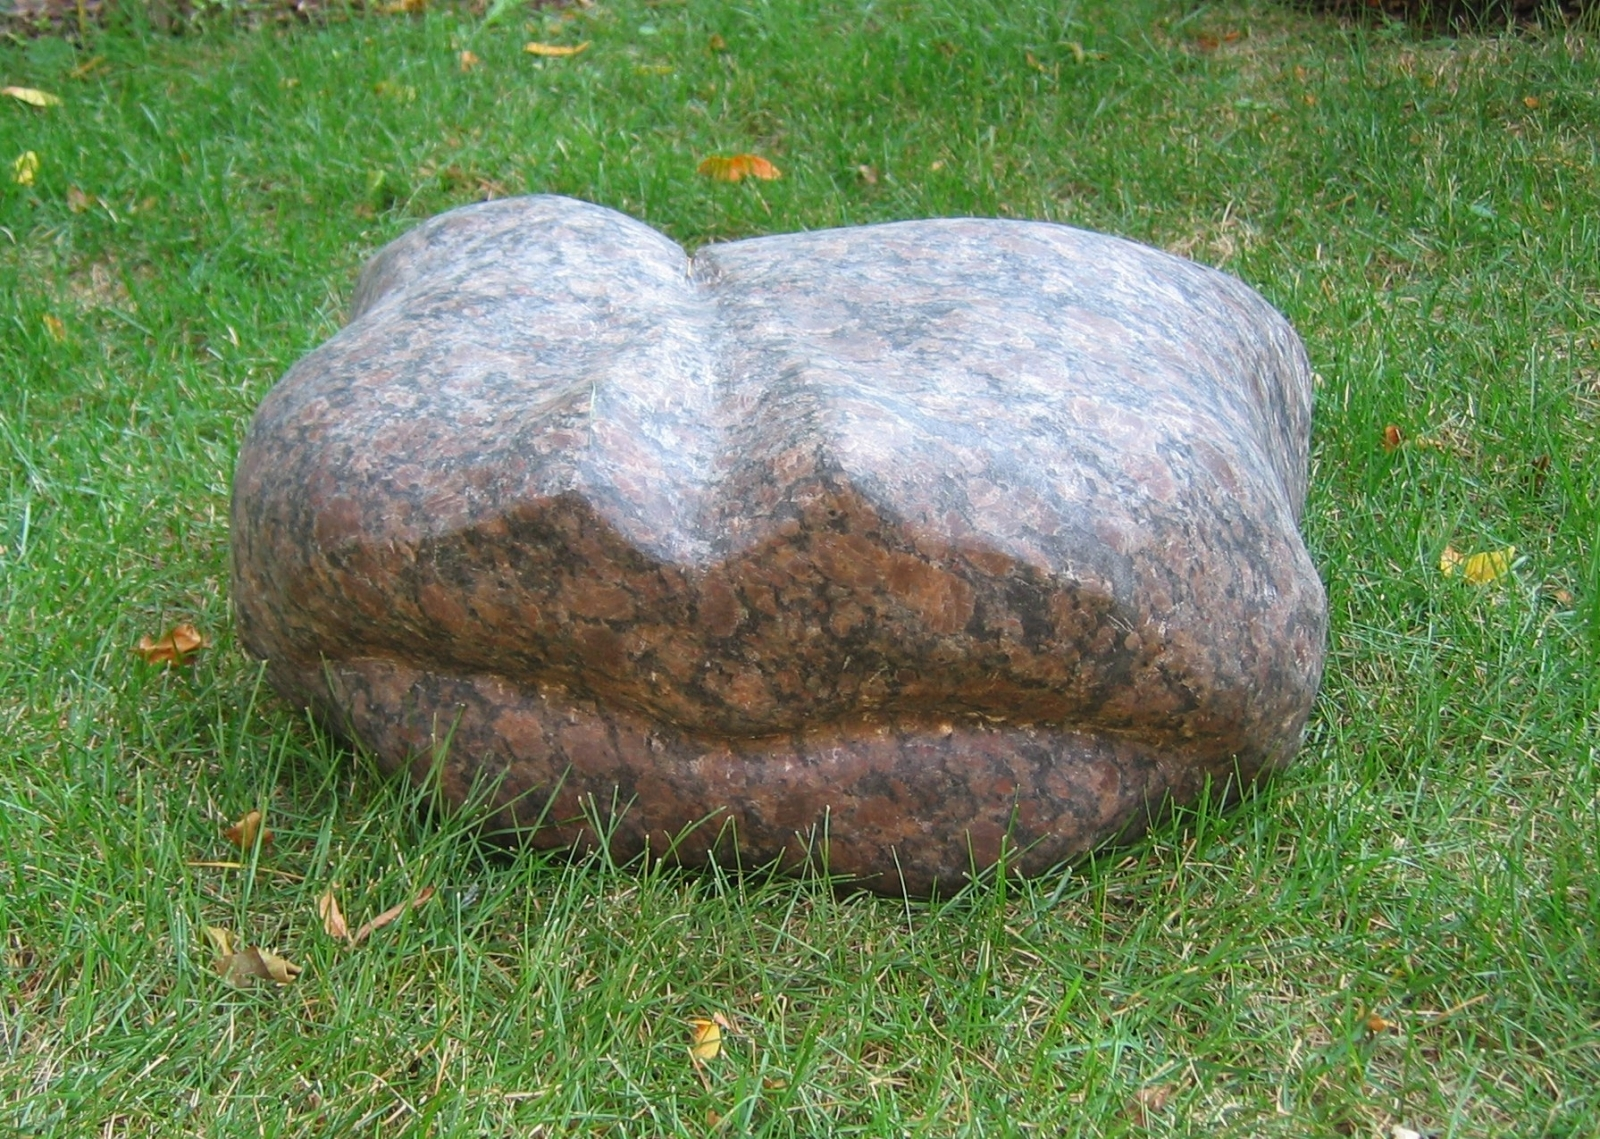 Pillow Talk, 2005, 30 cm x 60 cm x 25 cm, Granite